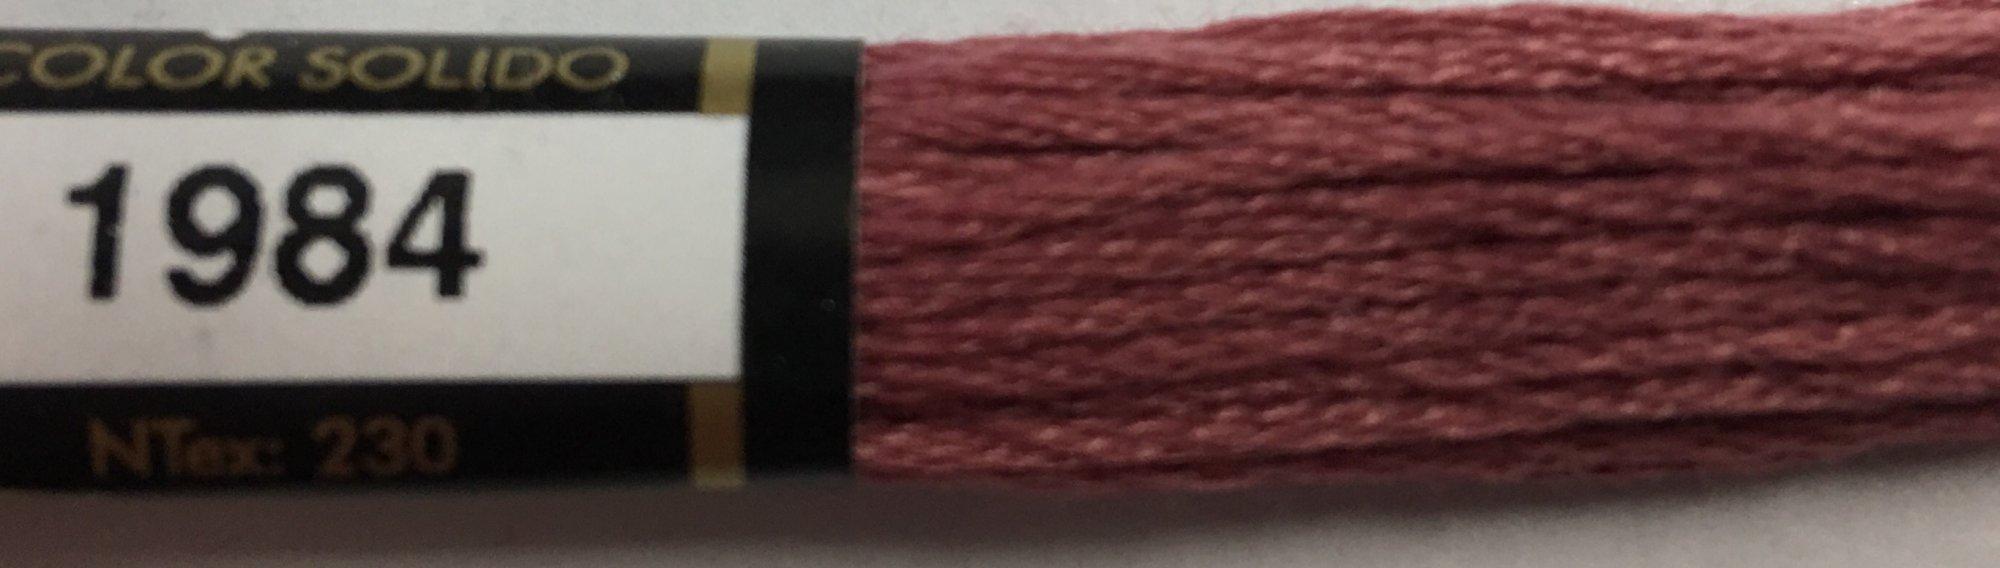 F1984 Presencia100% Mercerized Finca Cotton 6 ply Embroidery Floss 8 meter skein